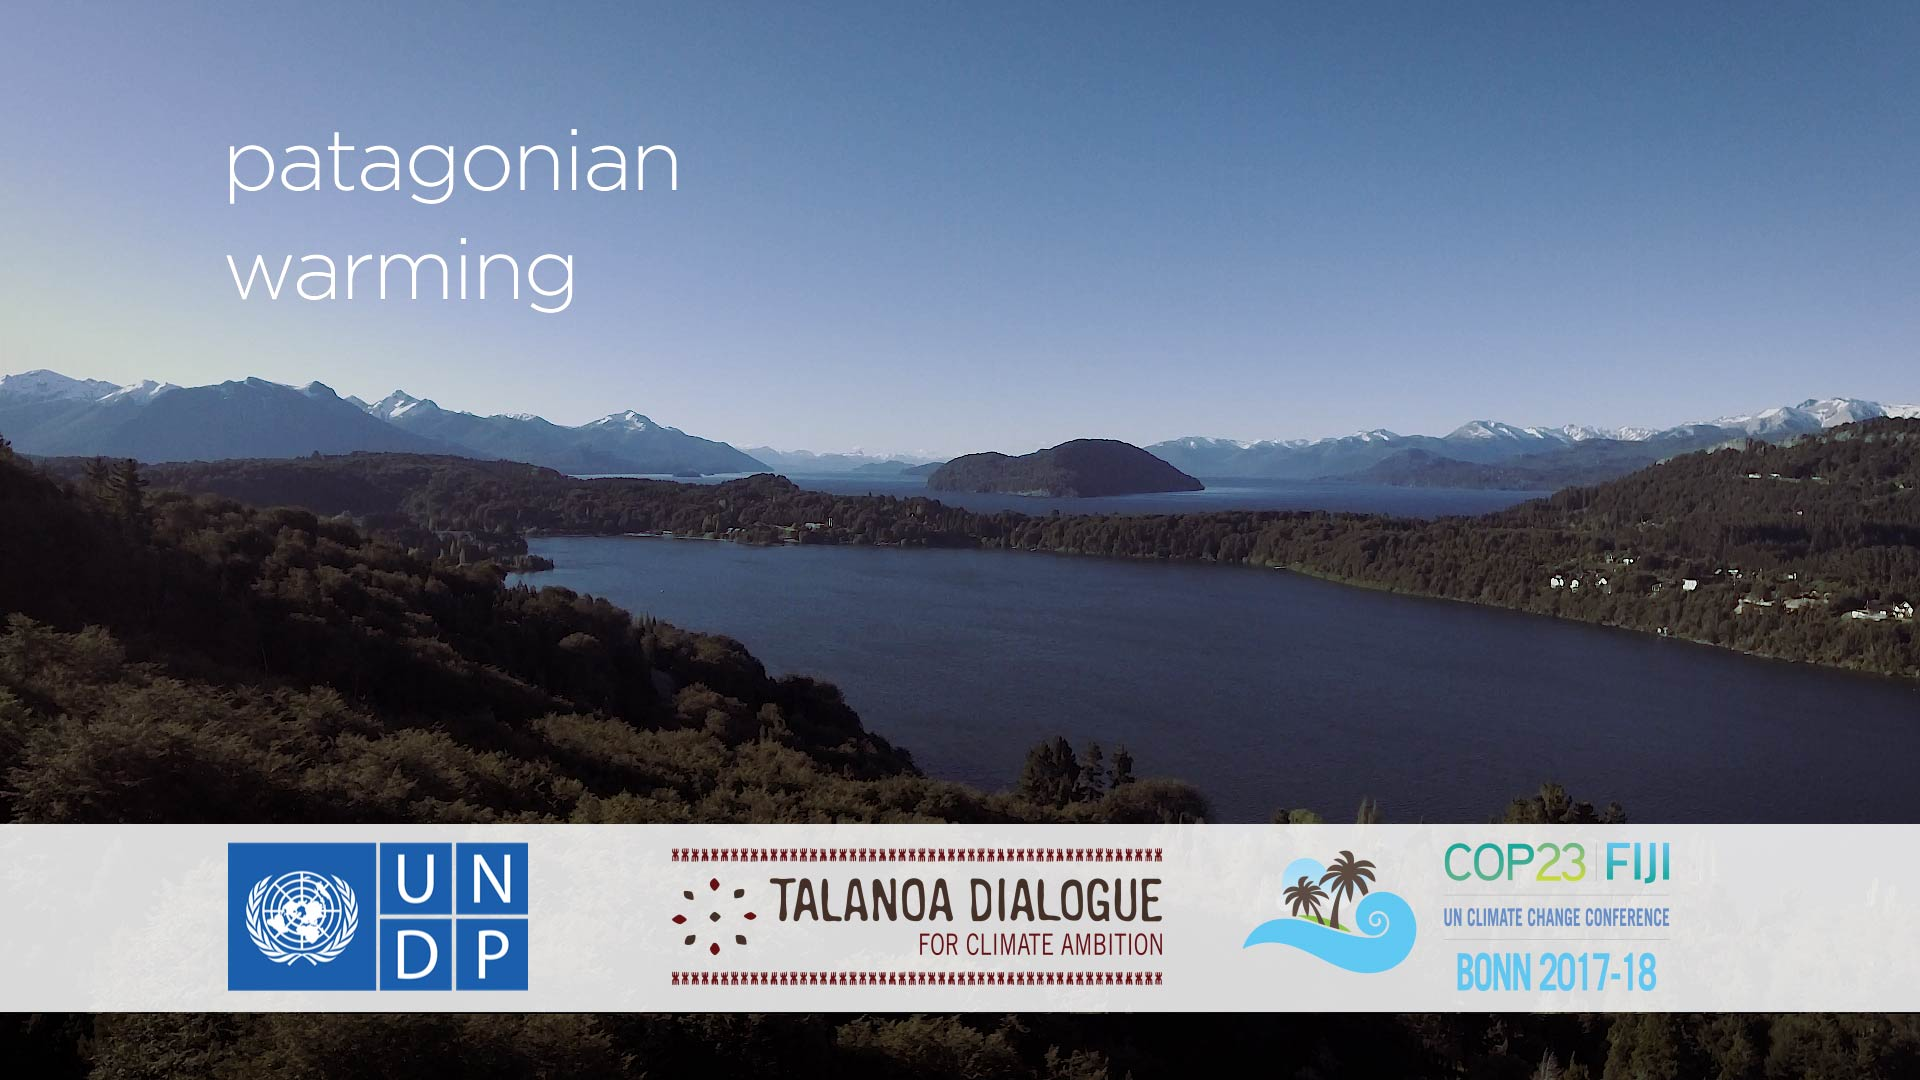 United Nations – Patagonian Warming